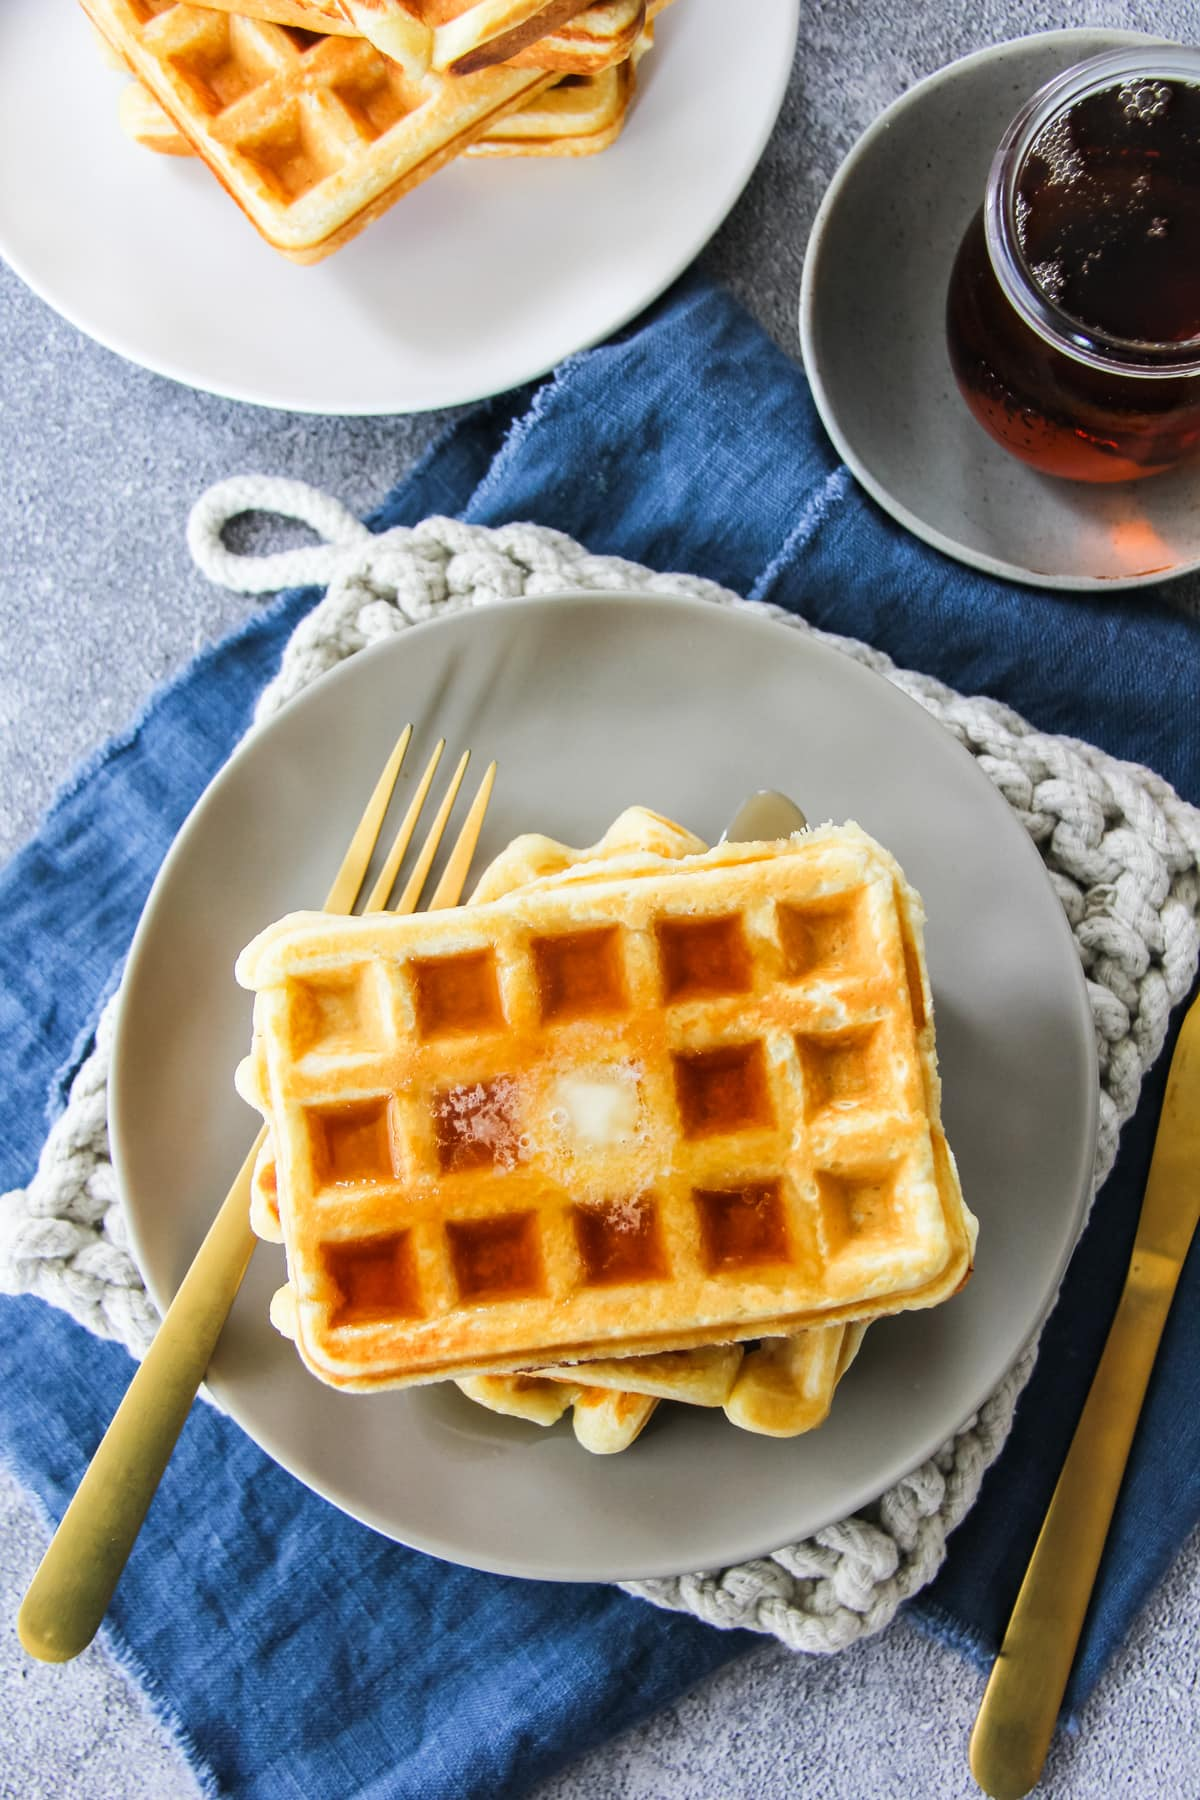 a top down view of a stack of sour cream waffles. the top waffle is has melted butter and syrup. in the background is a white plate with more waffles, a jar of syrup, gold fork, beige hot pad and blue linen napkin